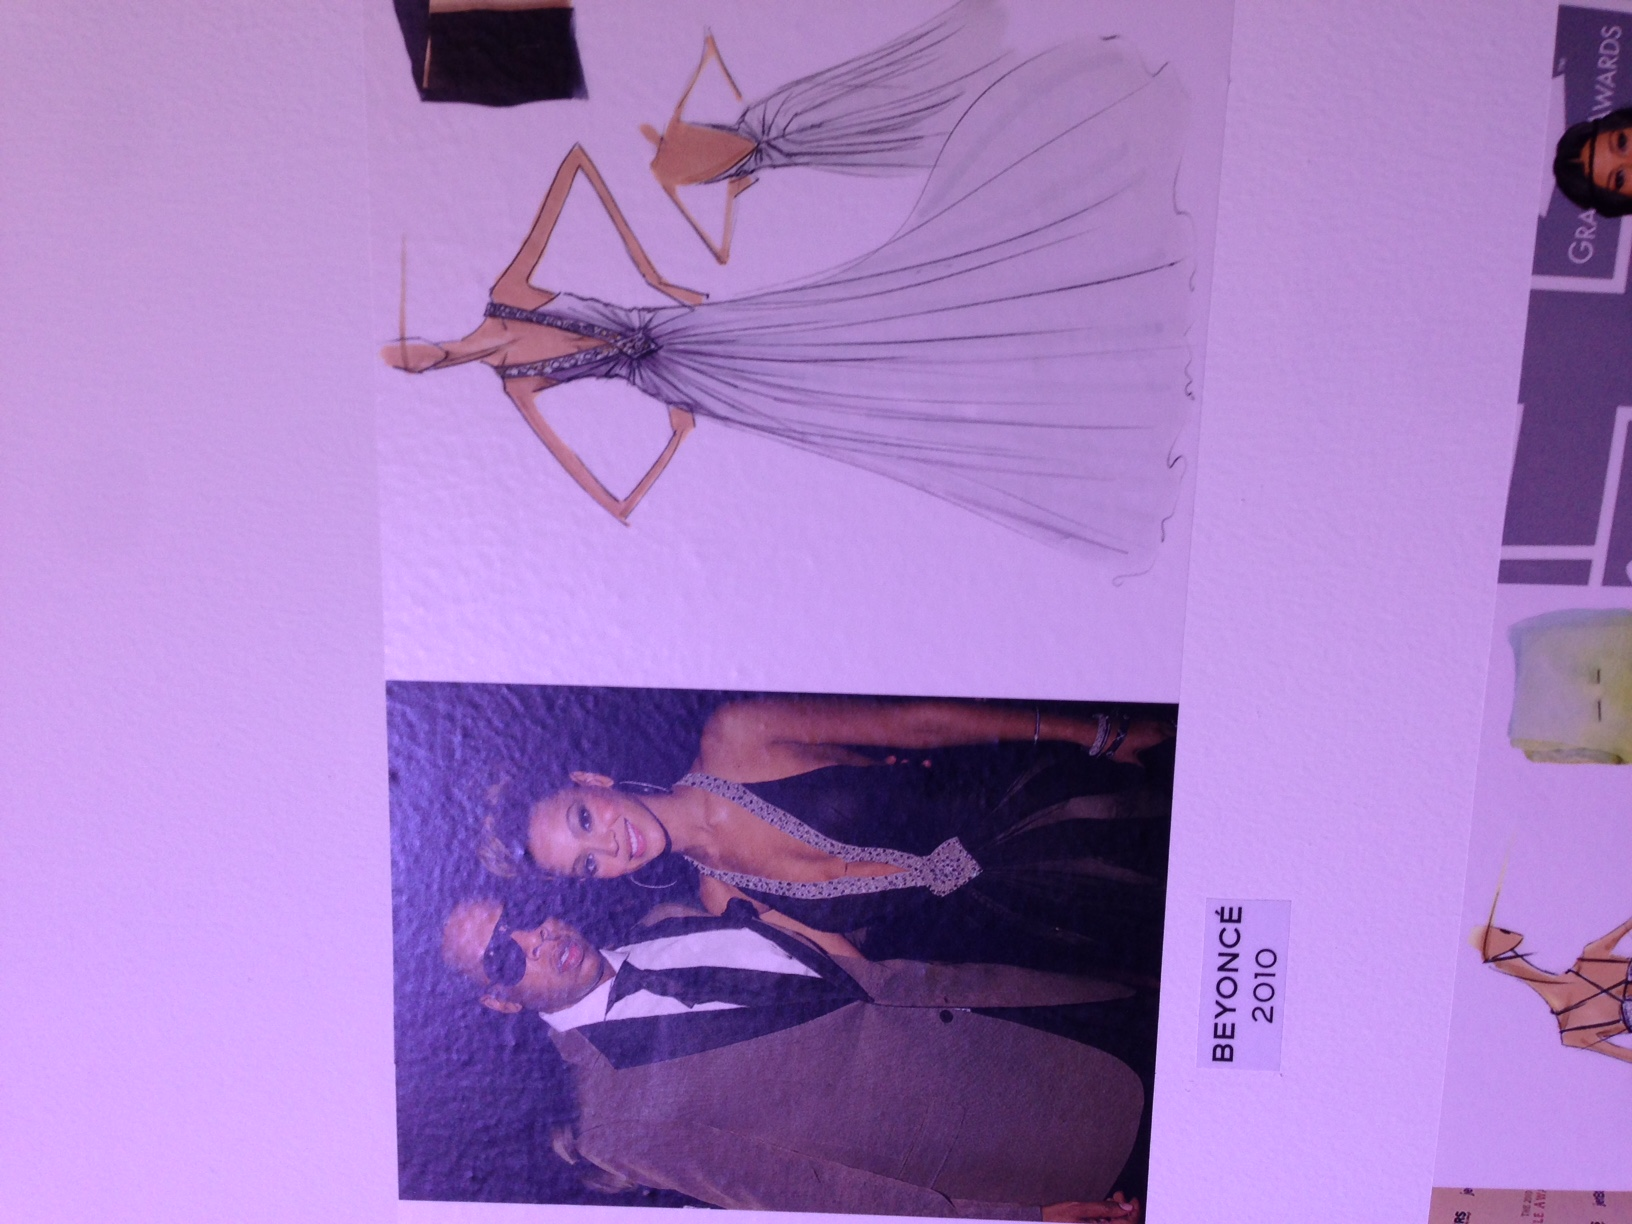 Beyonce wearing the dress and the dress sketch